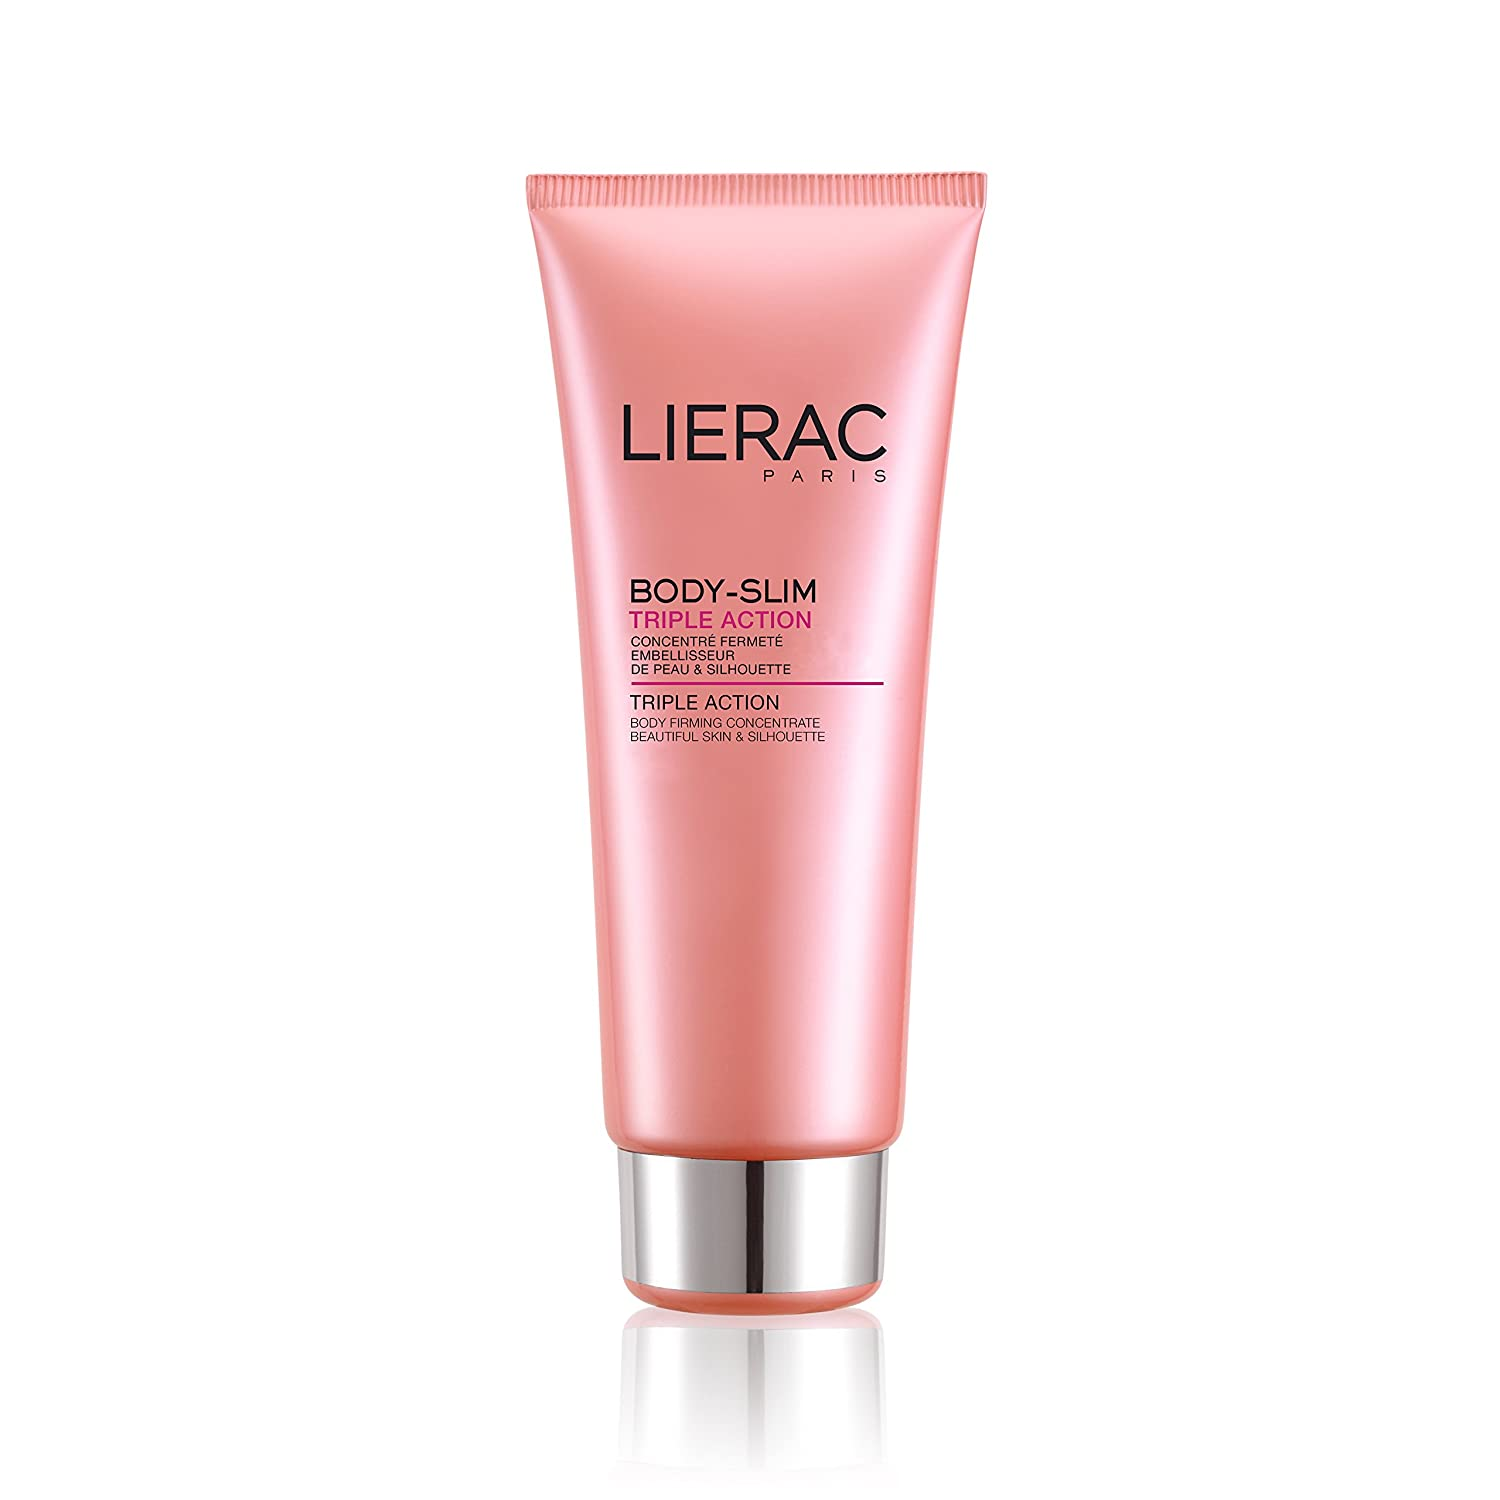 LIERAC Body-Slim Triple Action